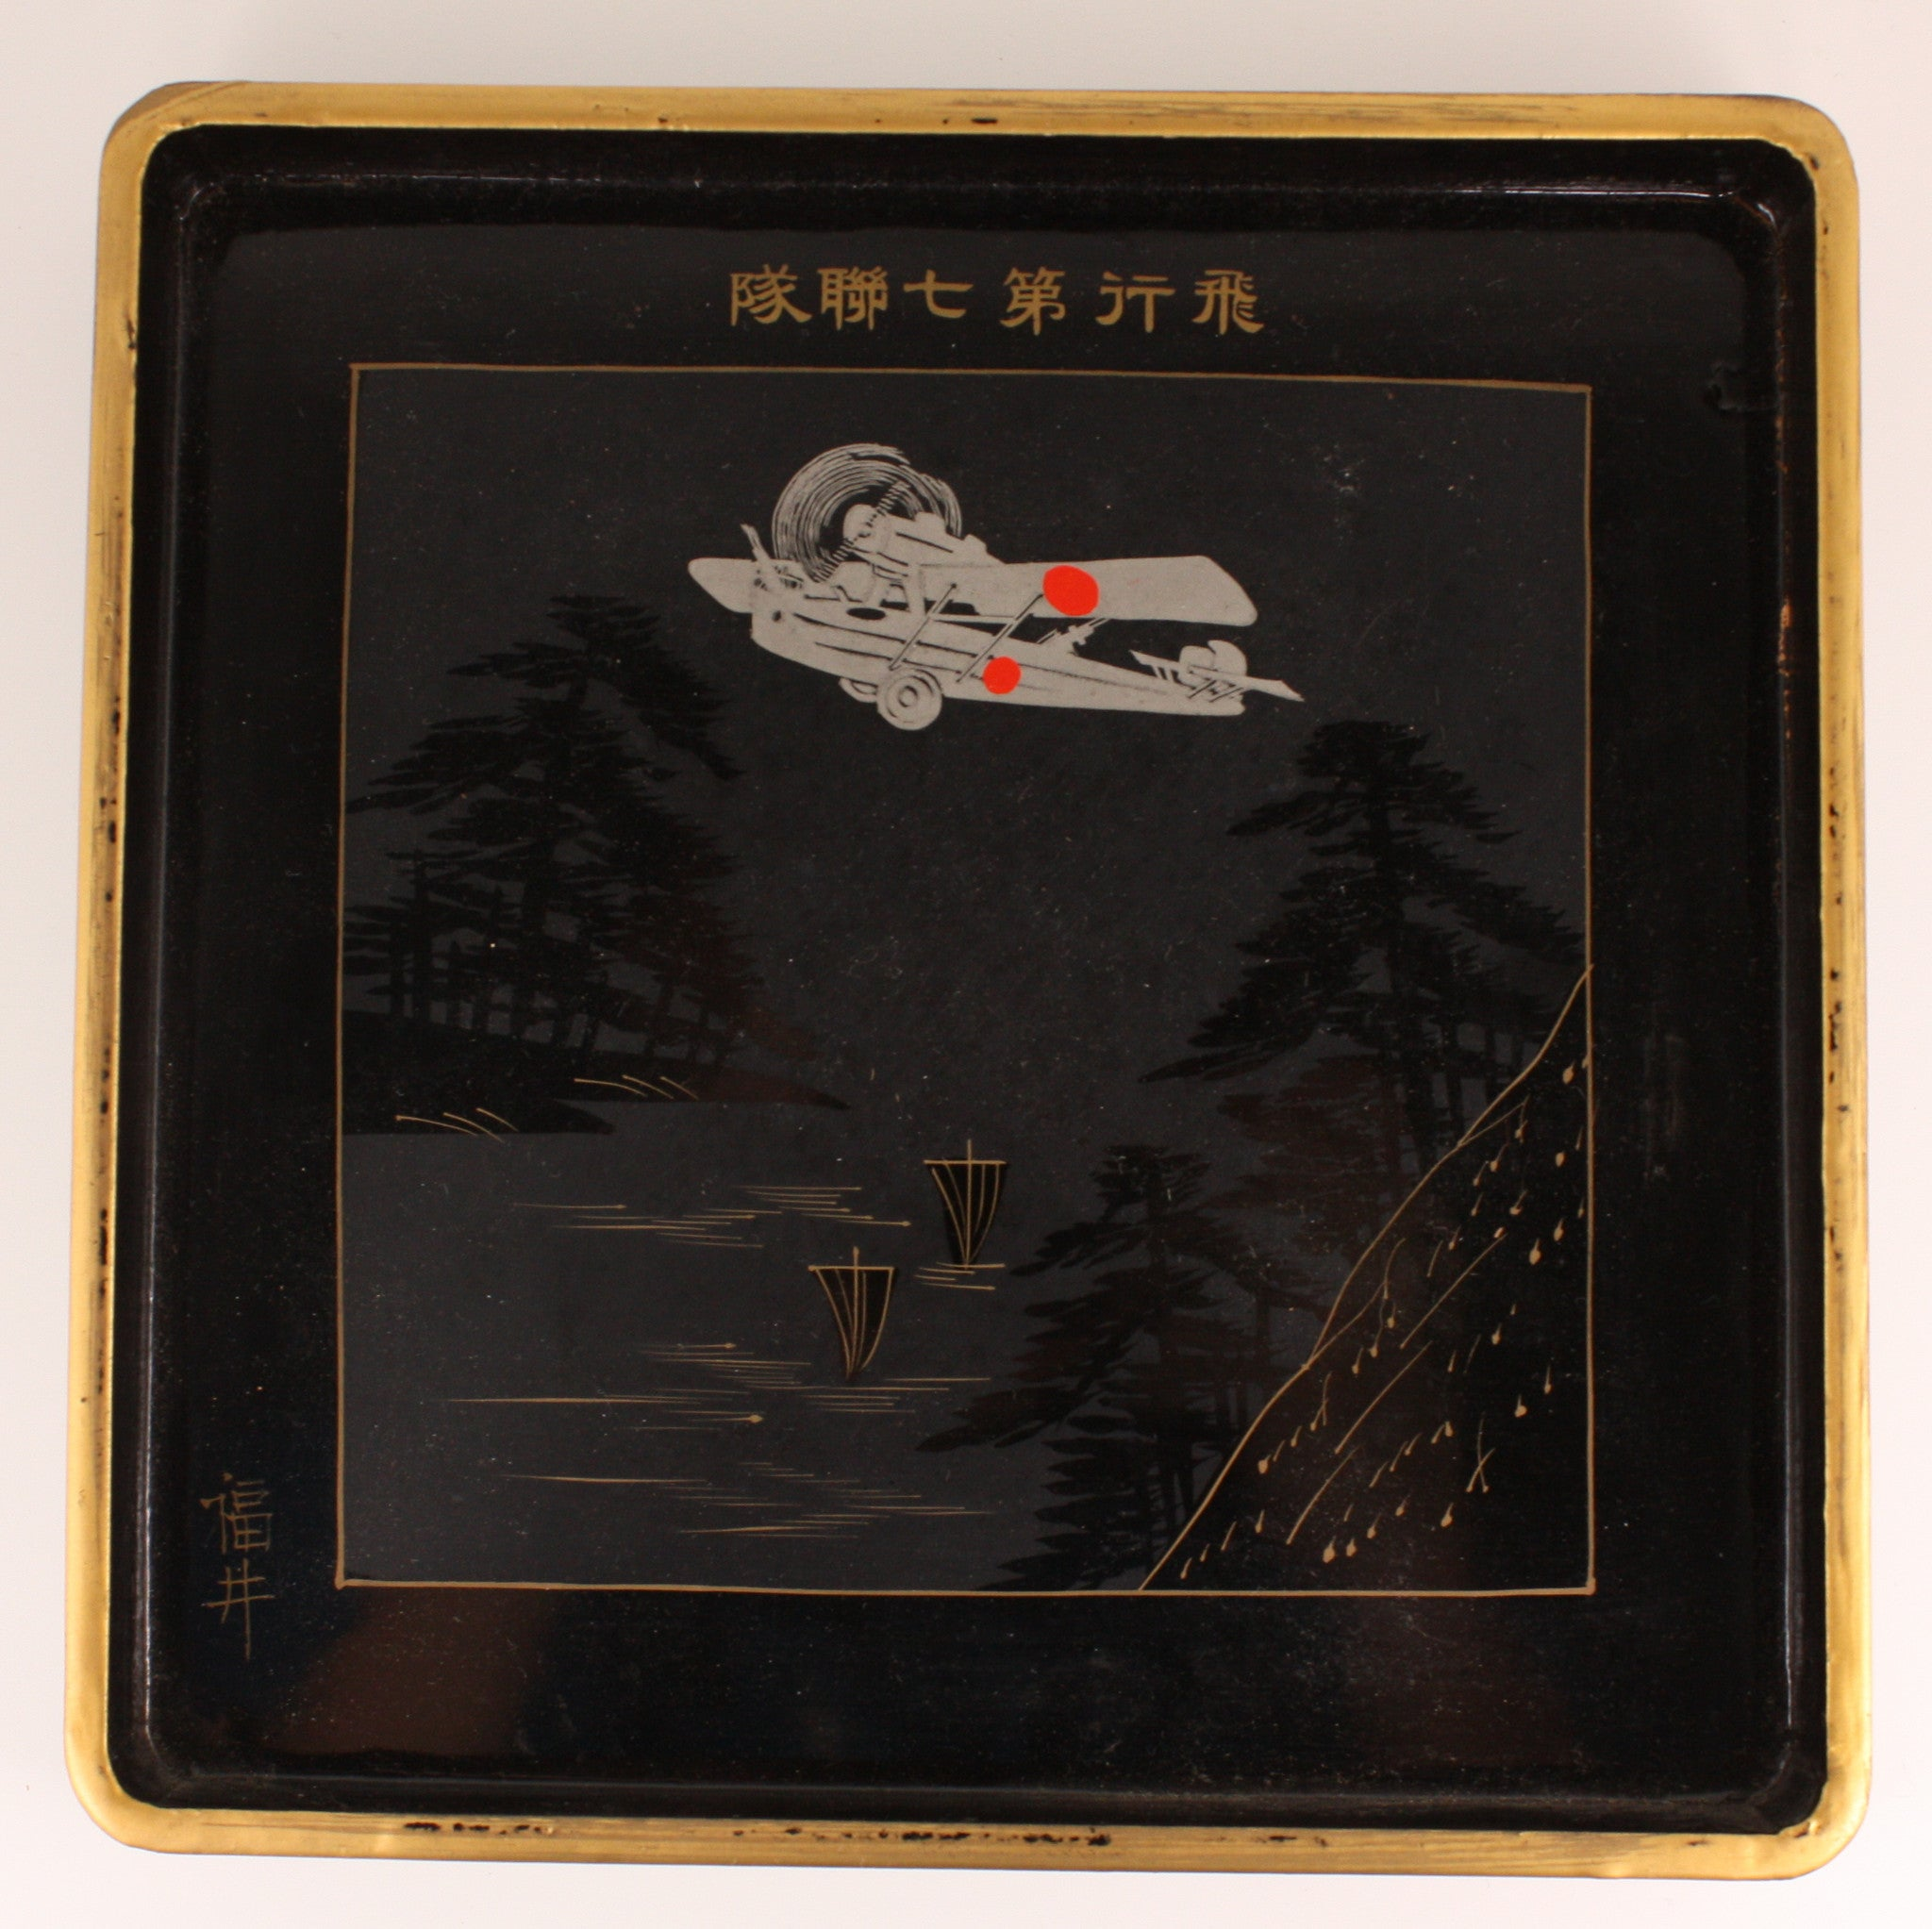 Rare Antique Japanese Military Kawasaki Ka 87 Bomber Army Lacquer Tray